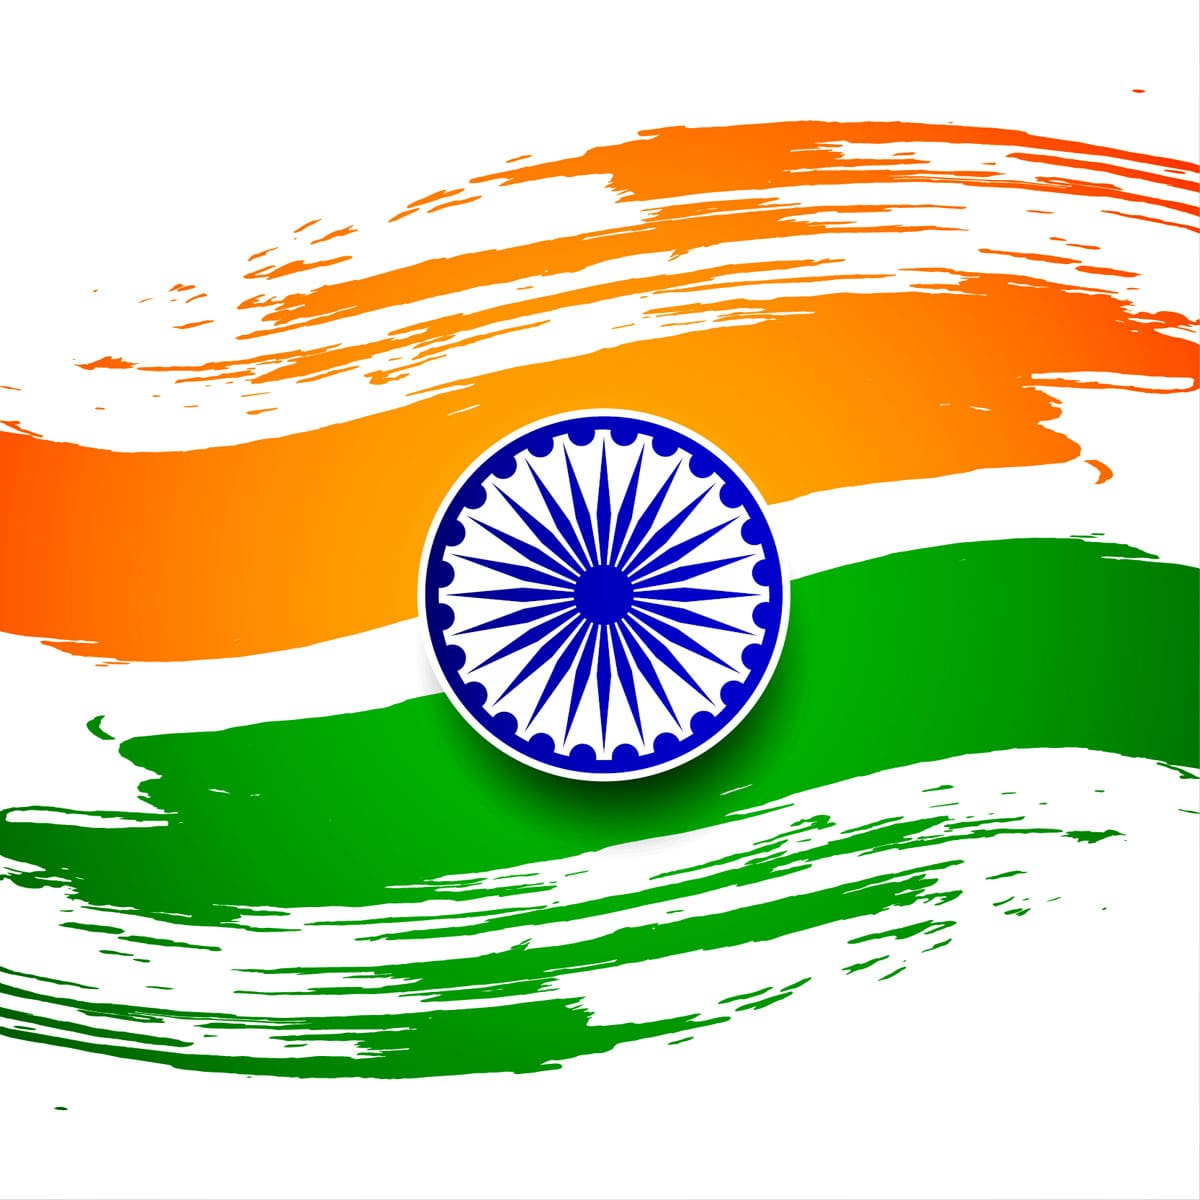 Indian Flag Images 1080p